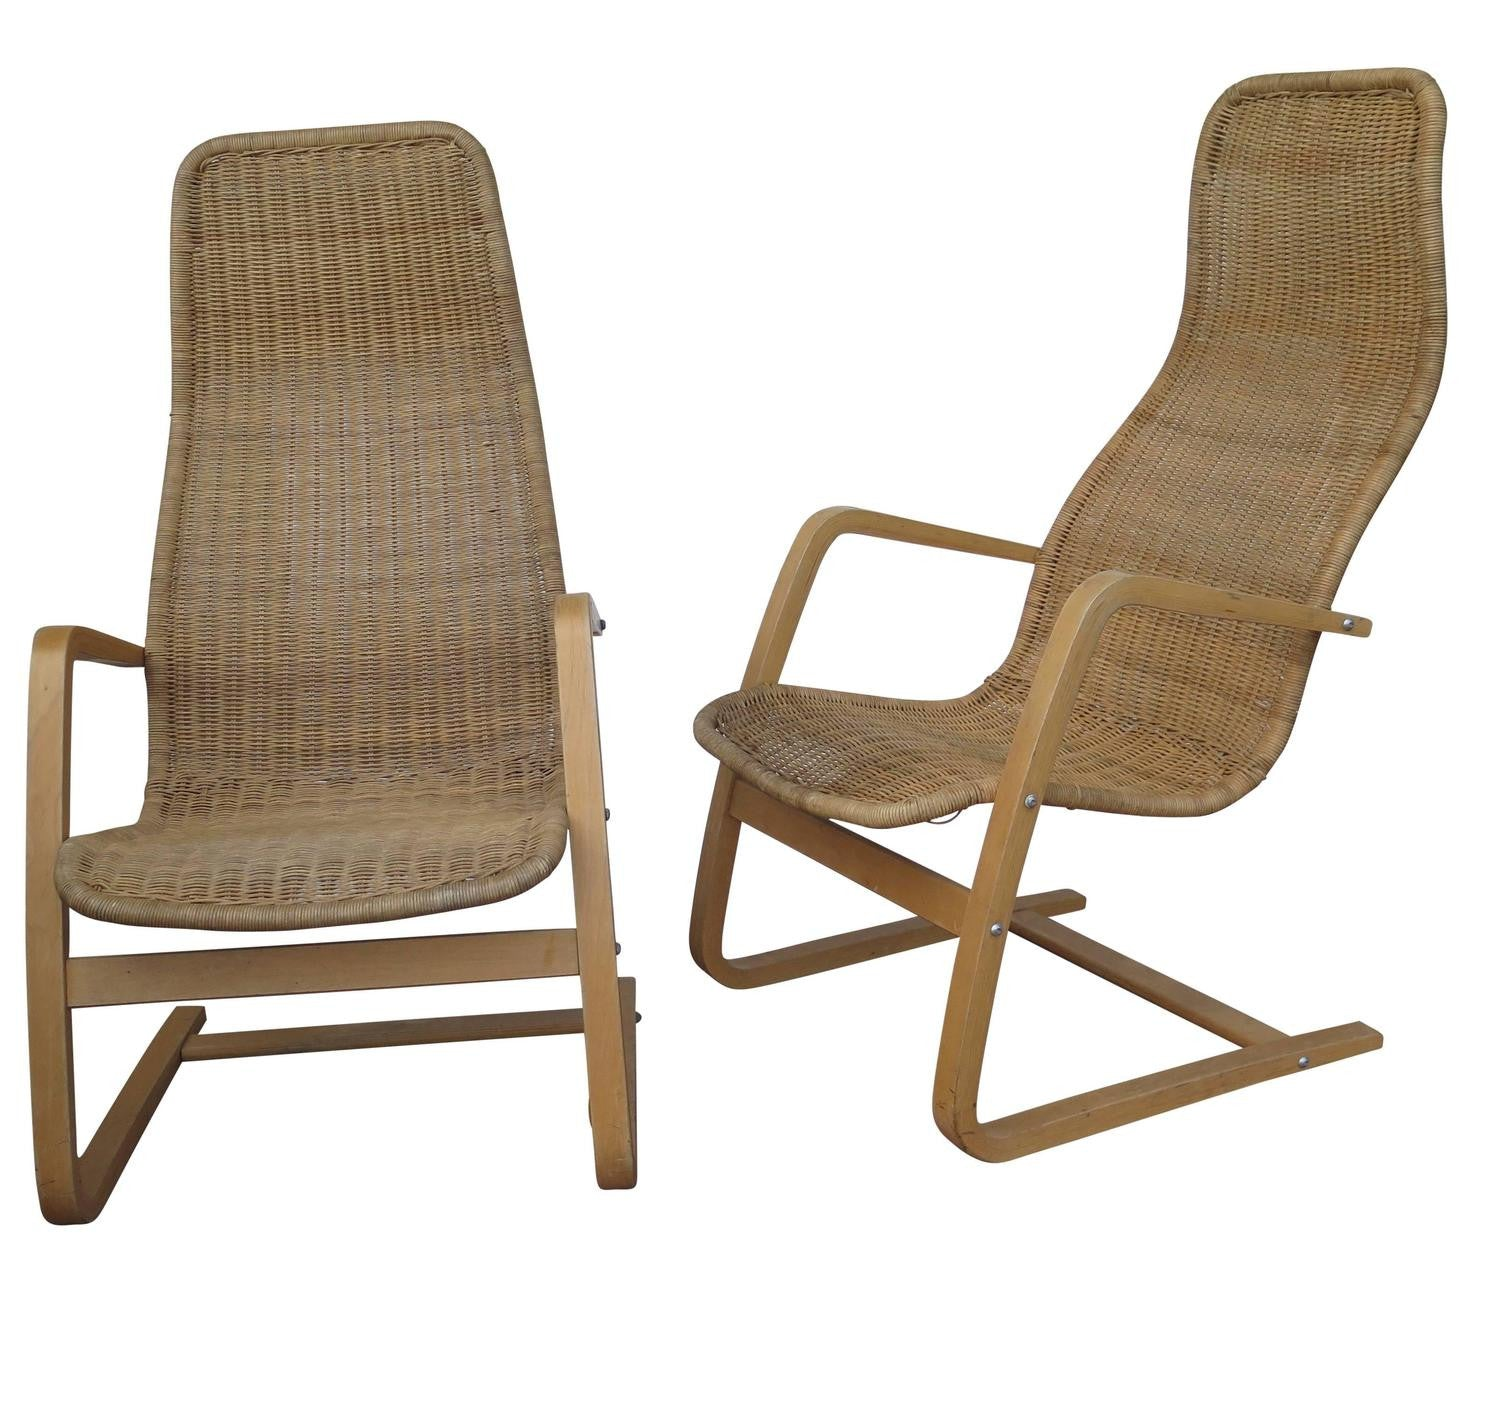 Superb Great Pair Of Mid Century Modern Swedish Chairs Wicker Bentwood